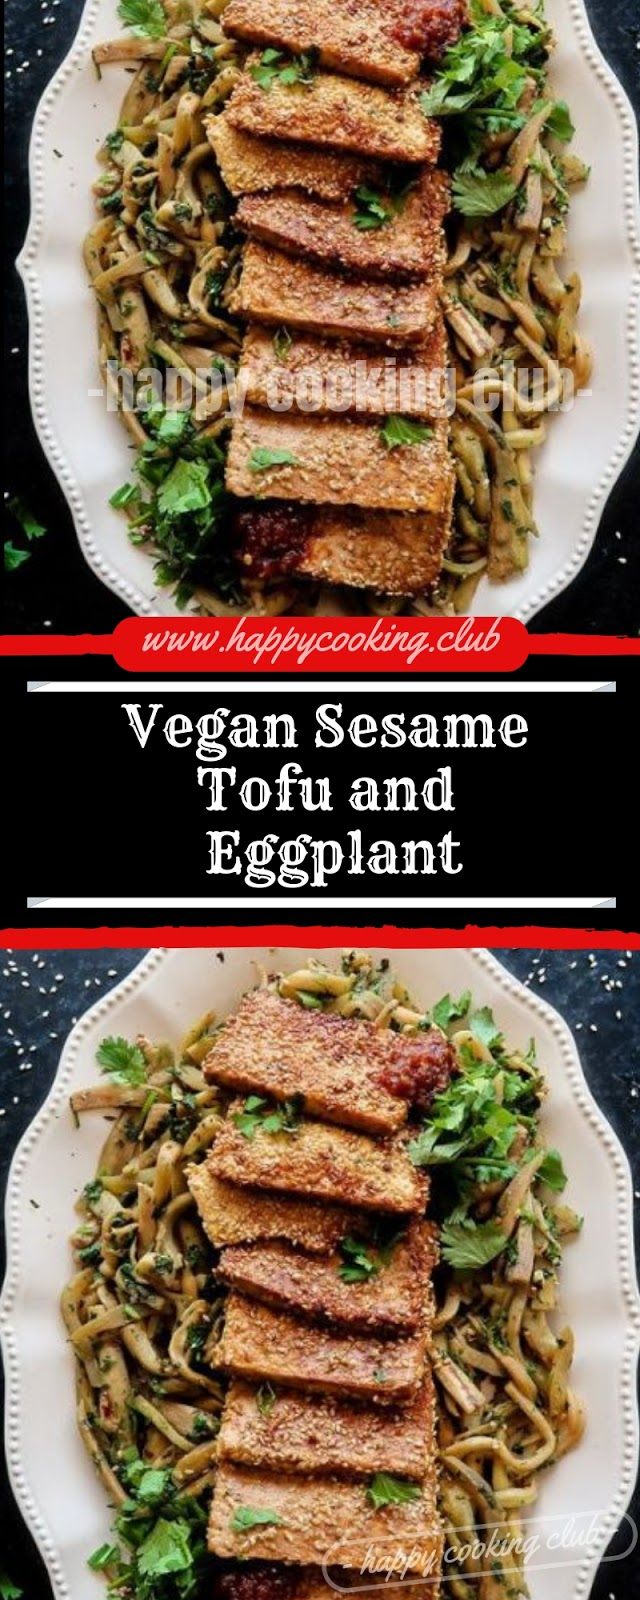 Vegan Sesame Tofu and Eggplant